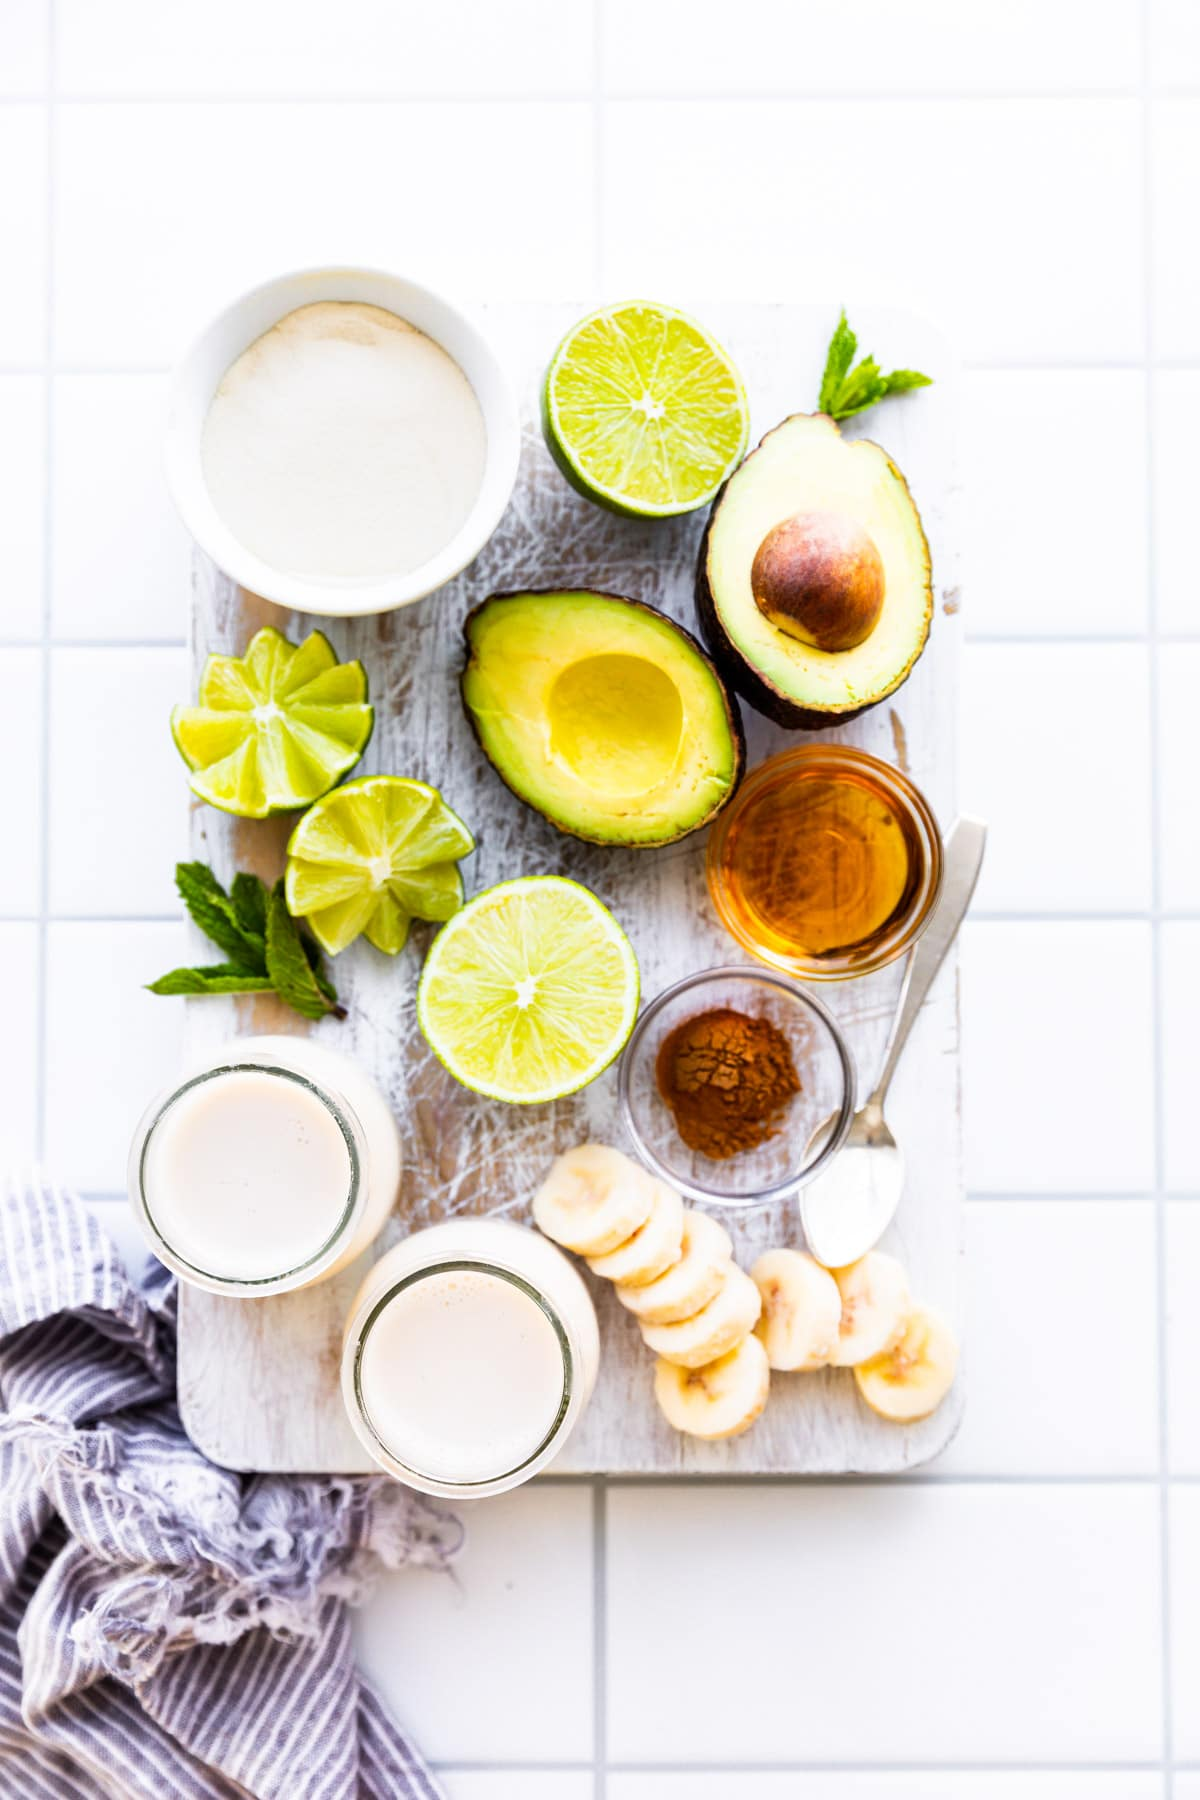 Ingredients on a wood board for smoothie making. Avocado, milk, protein, babana, lime, cinnamon